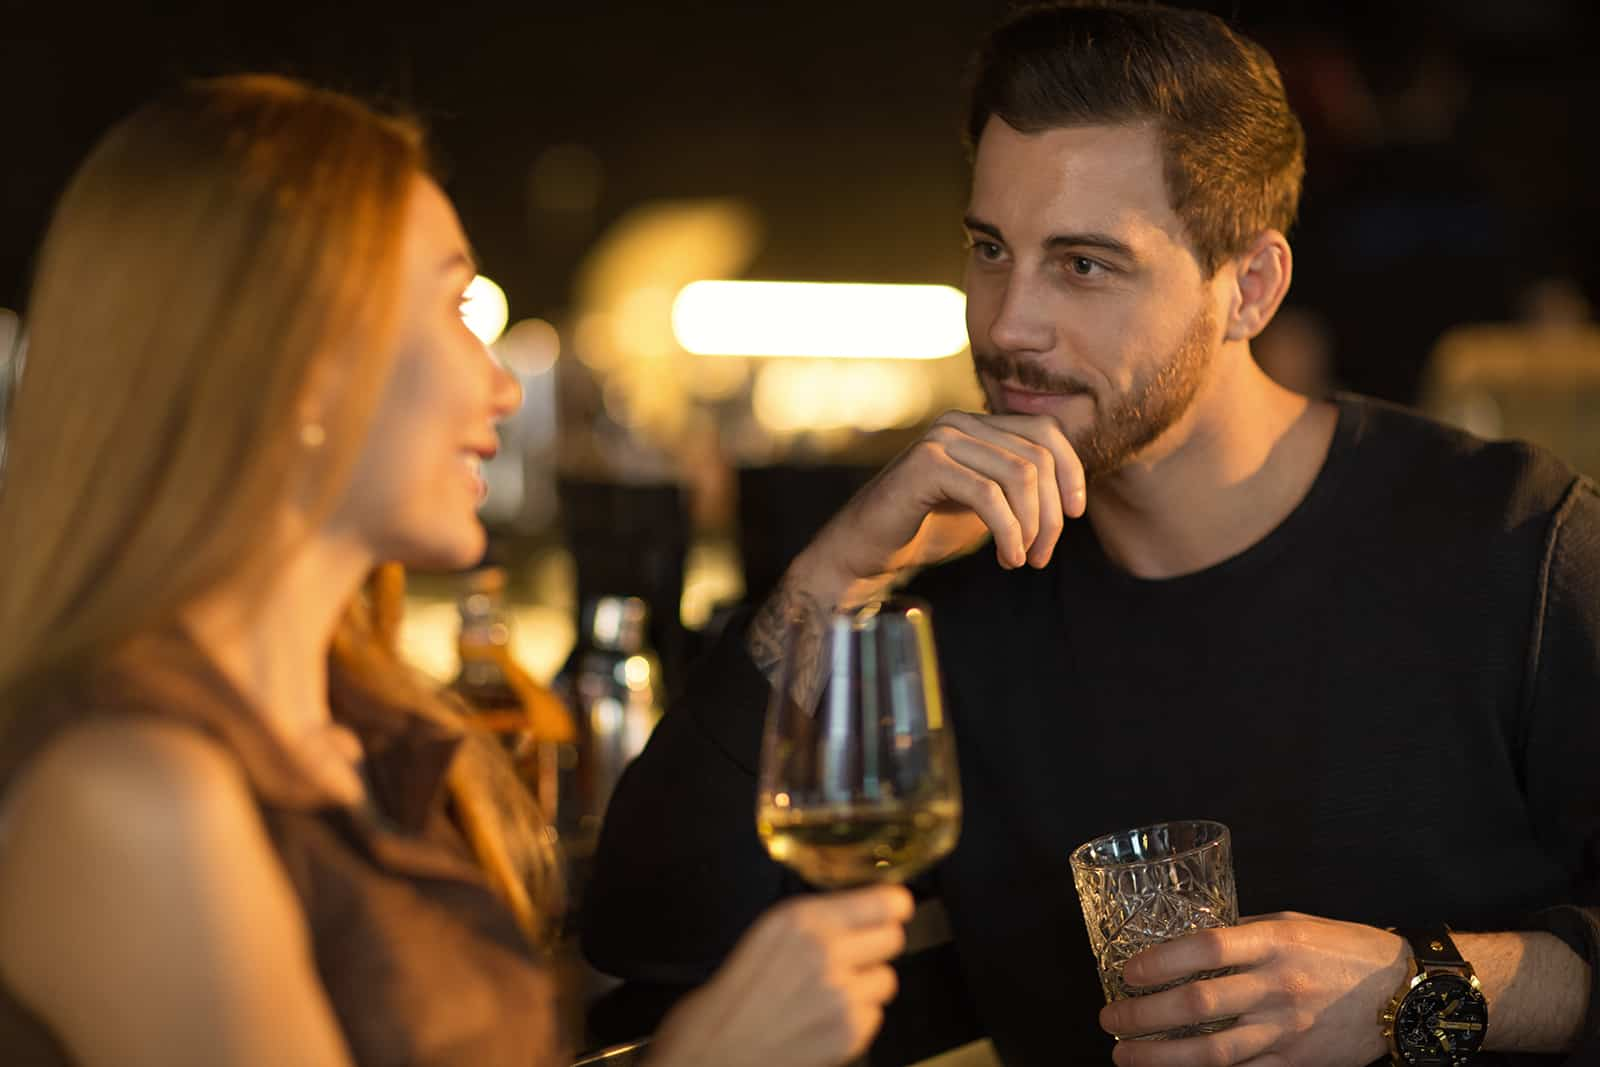 smiling man thoughtfully listening to a woman in the bar